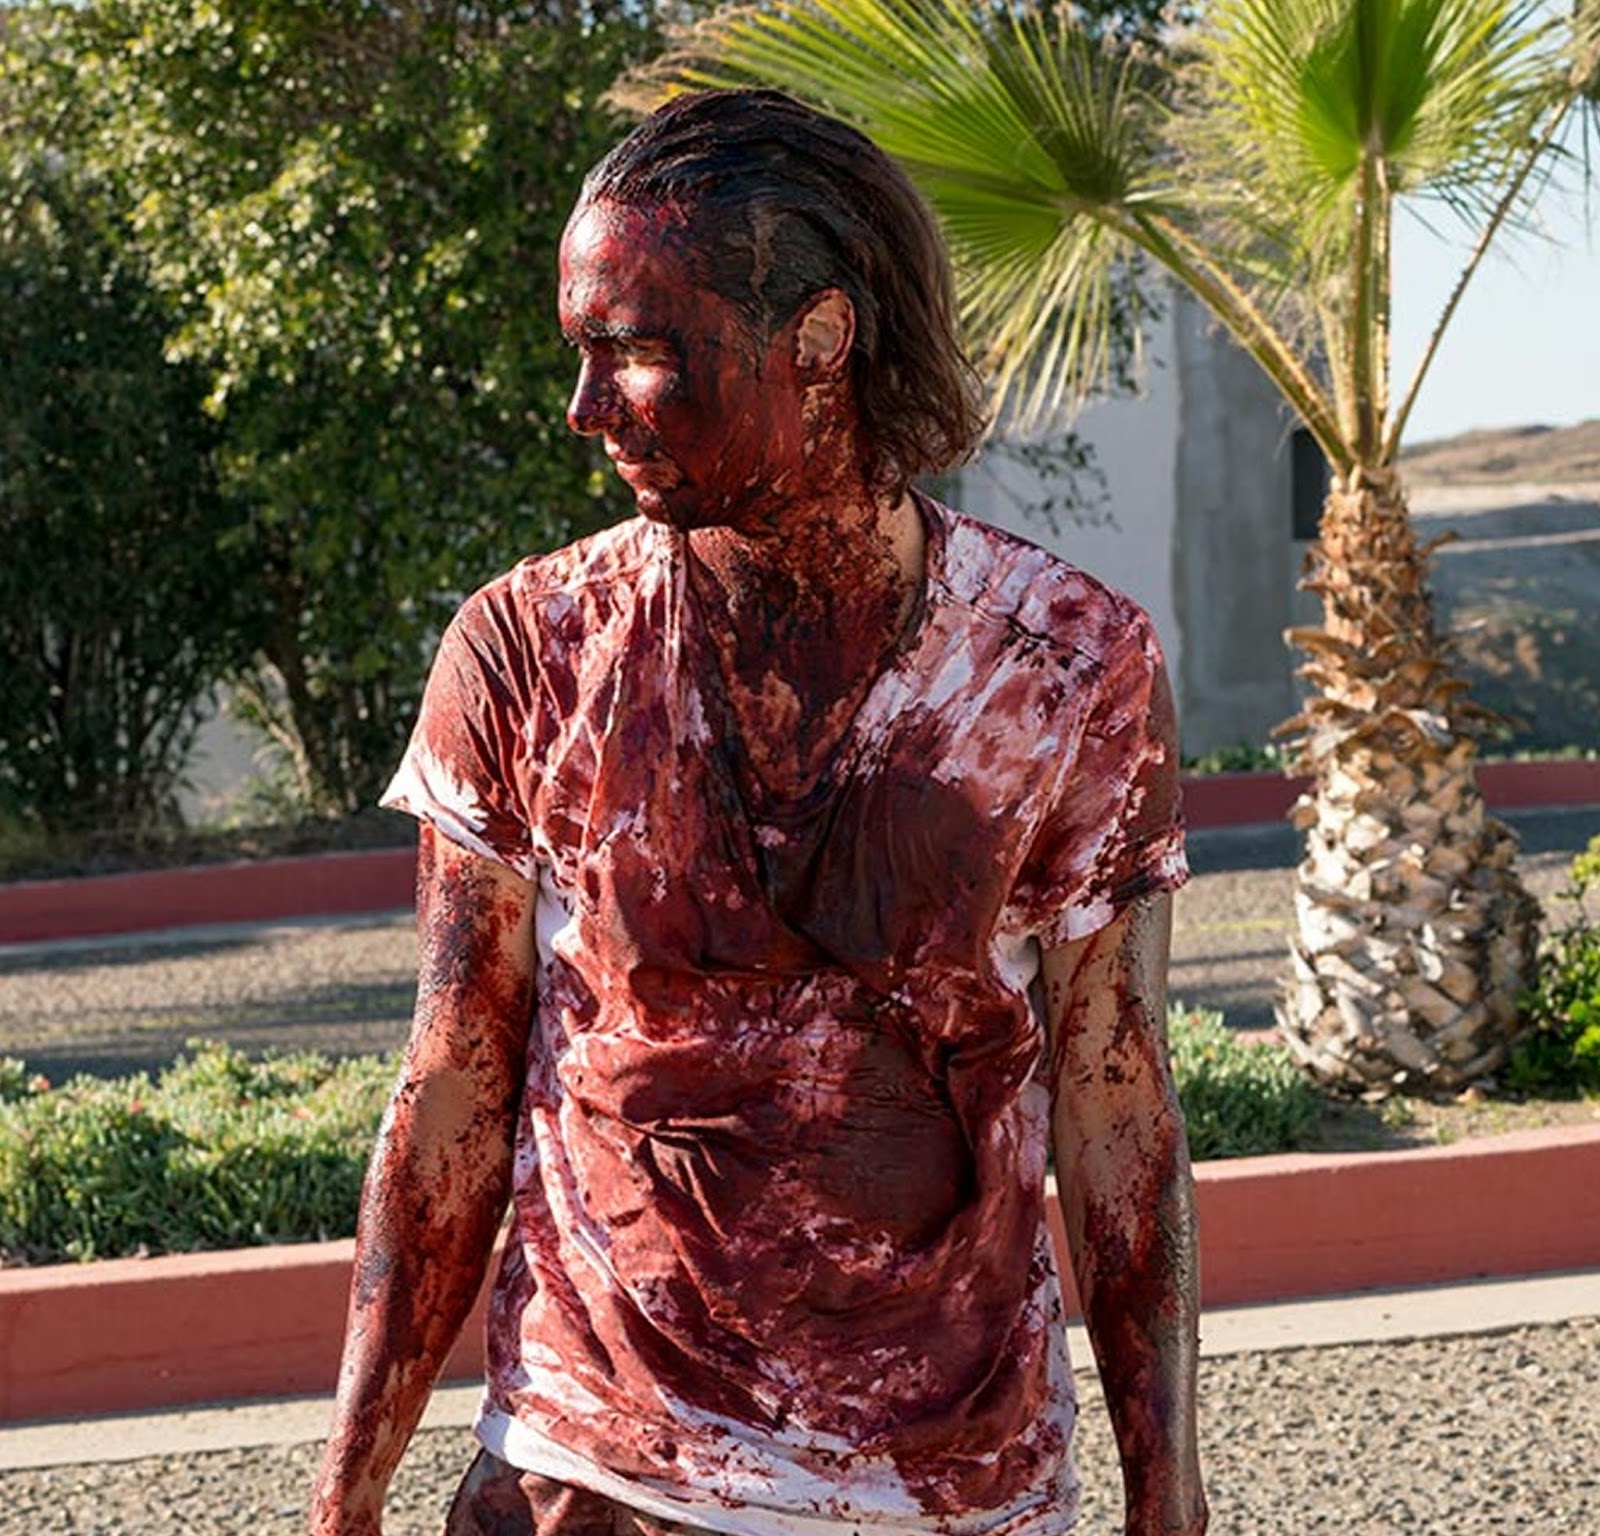 Nick fear the walking dead